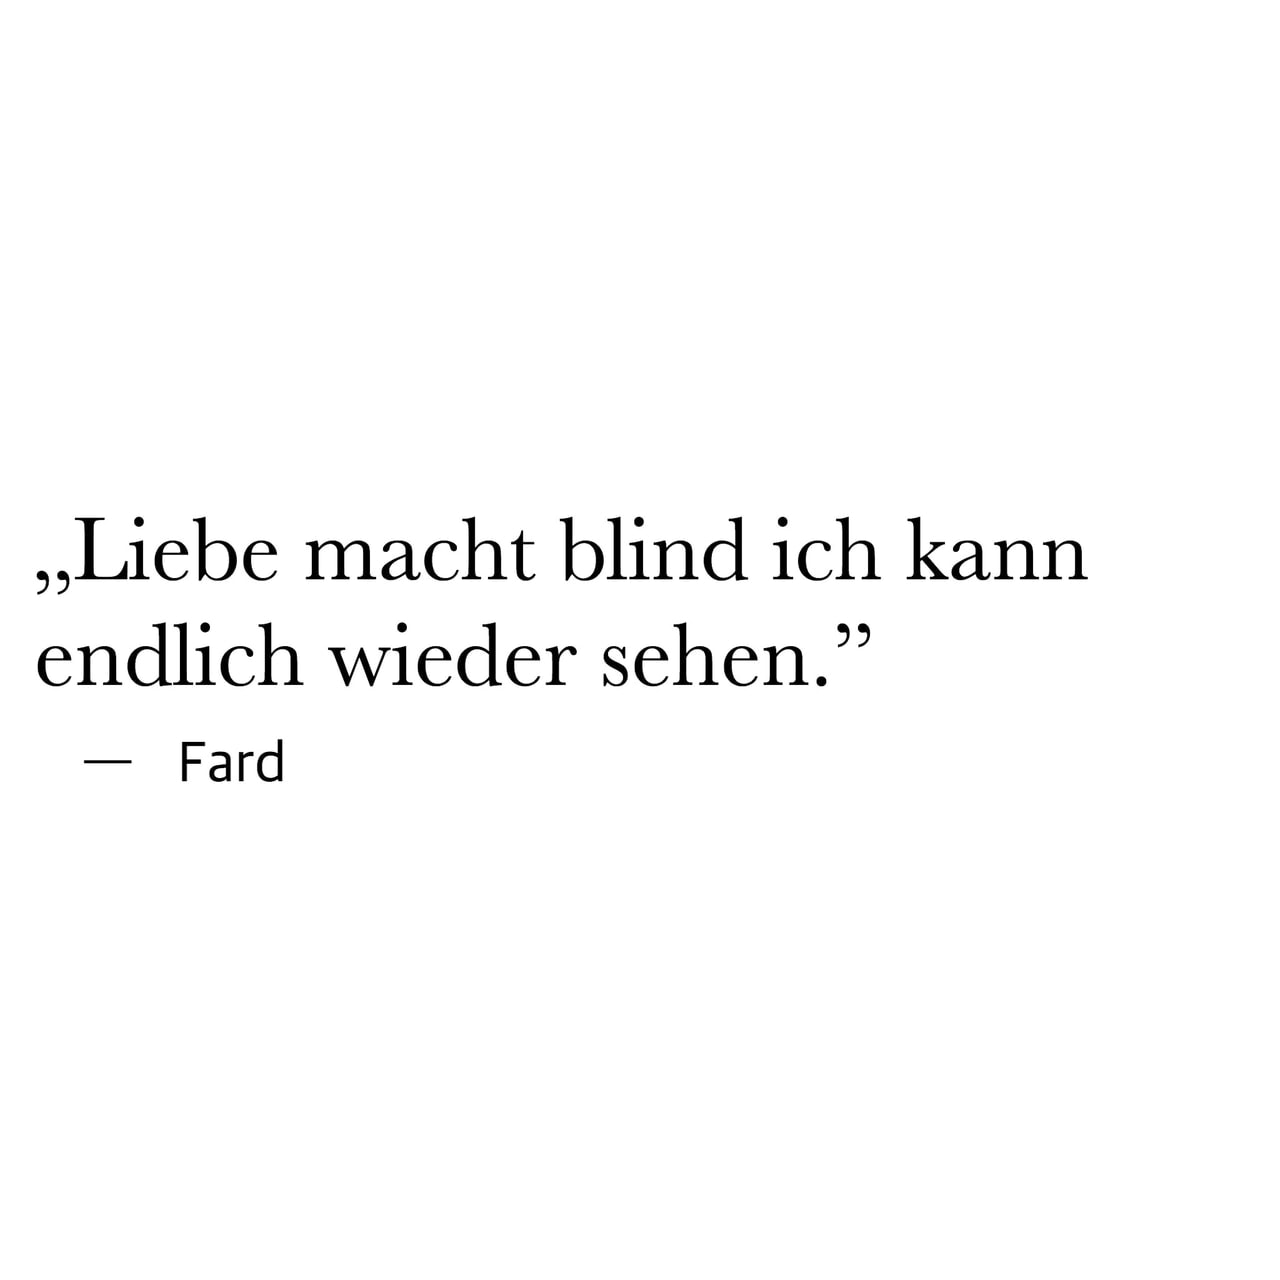 55 Images About Zitate On We Heart It See More About Quotes